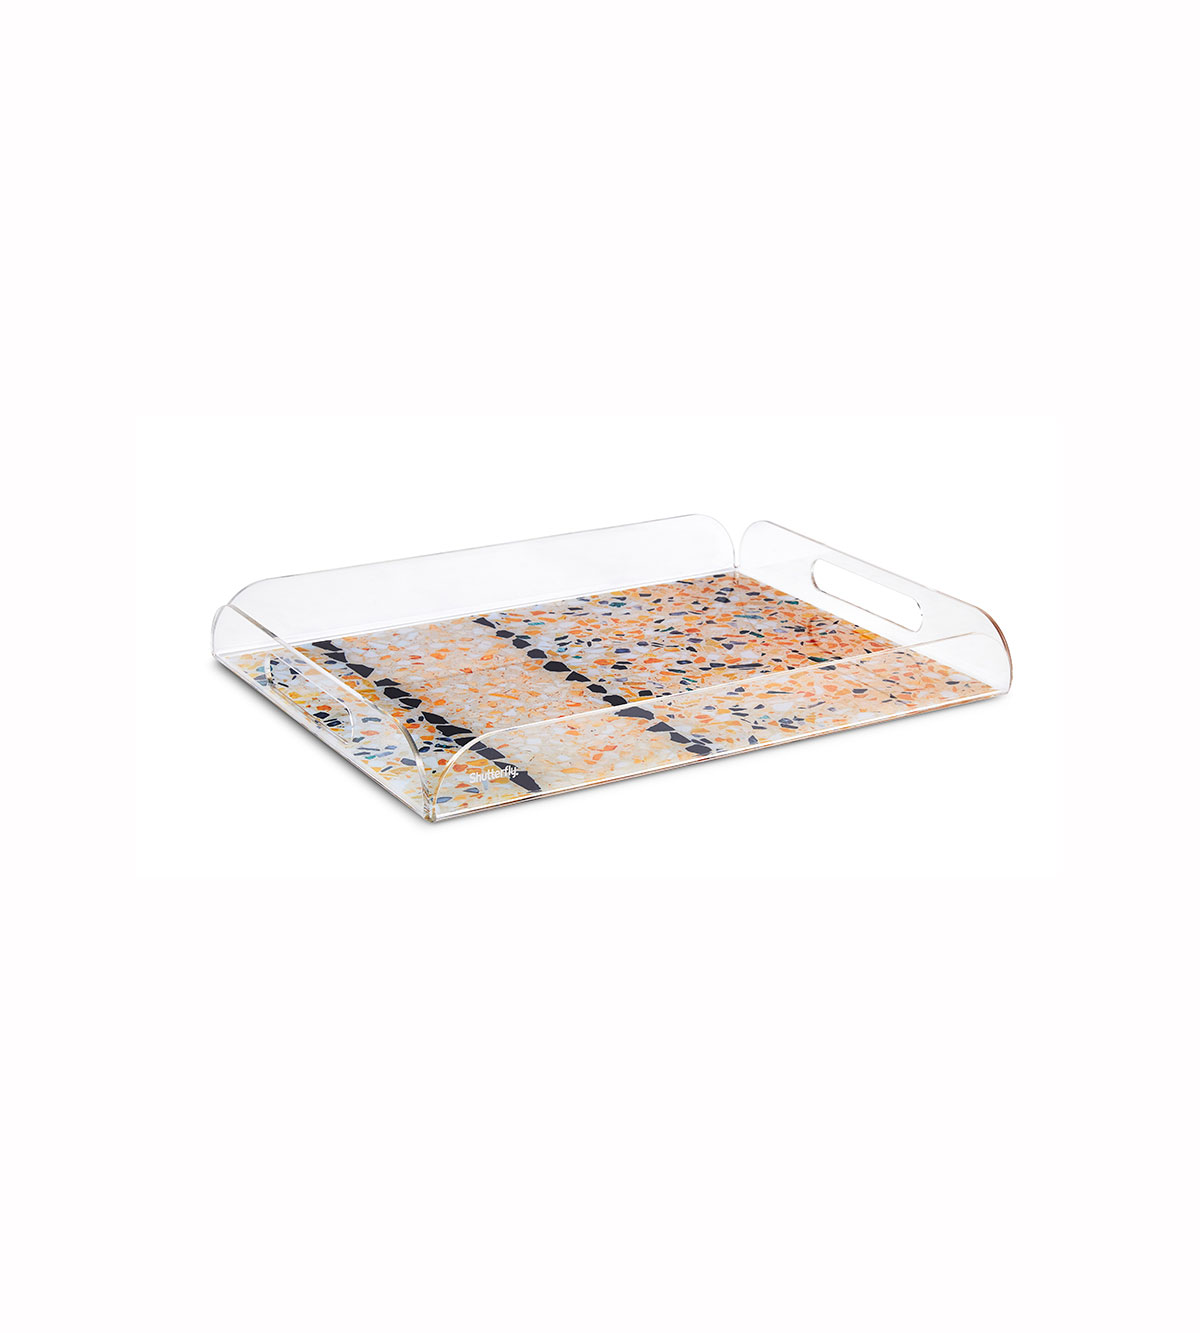 Mandy Moore Collection Neutral Terrazzo Serving Tray